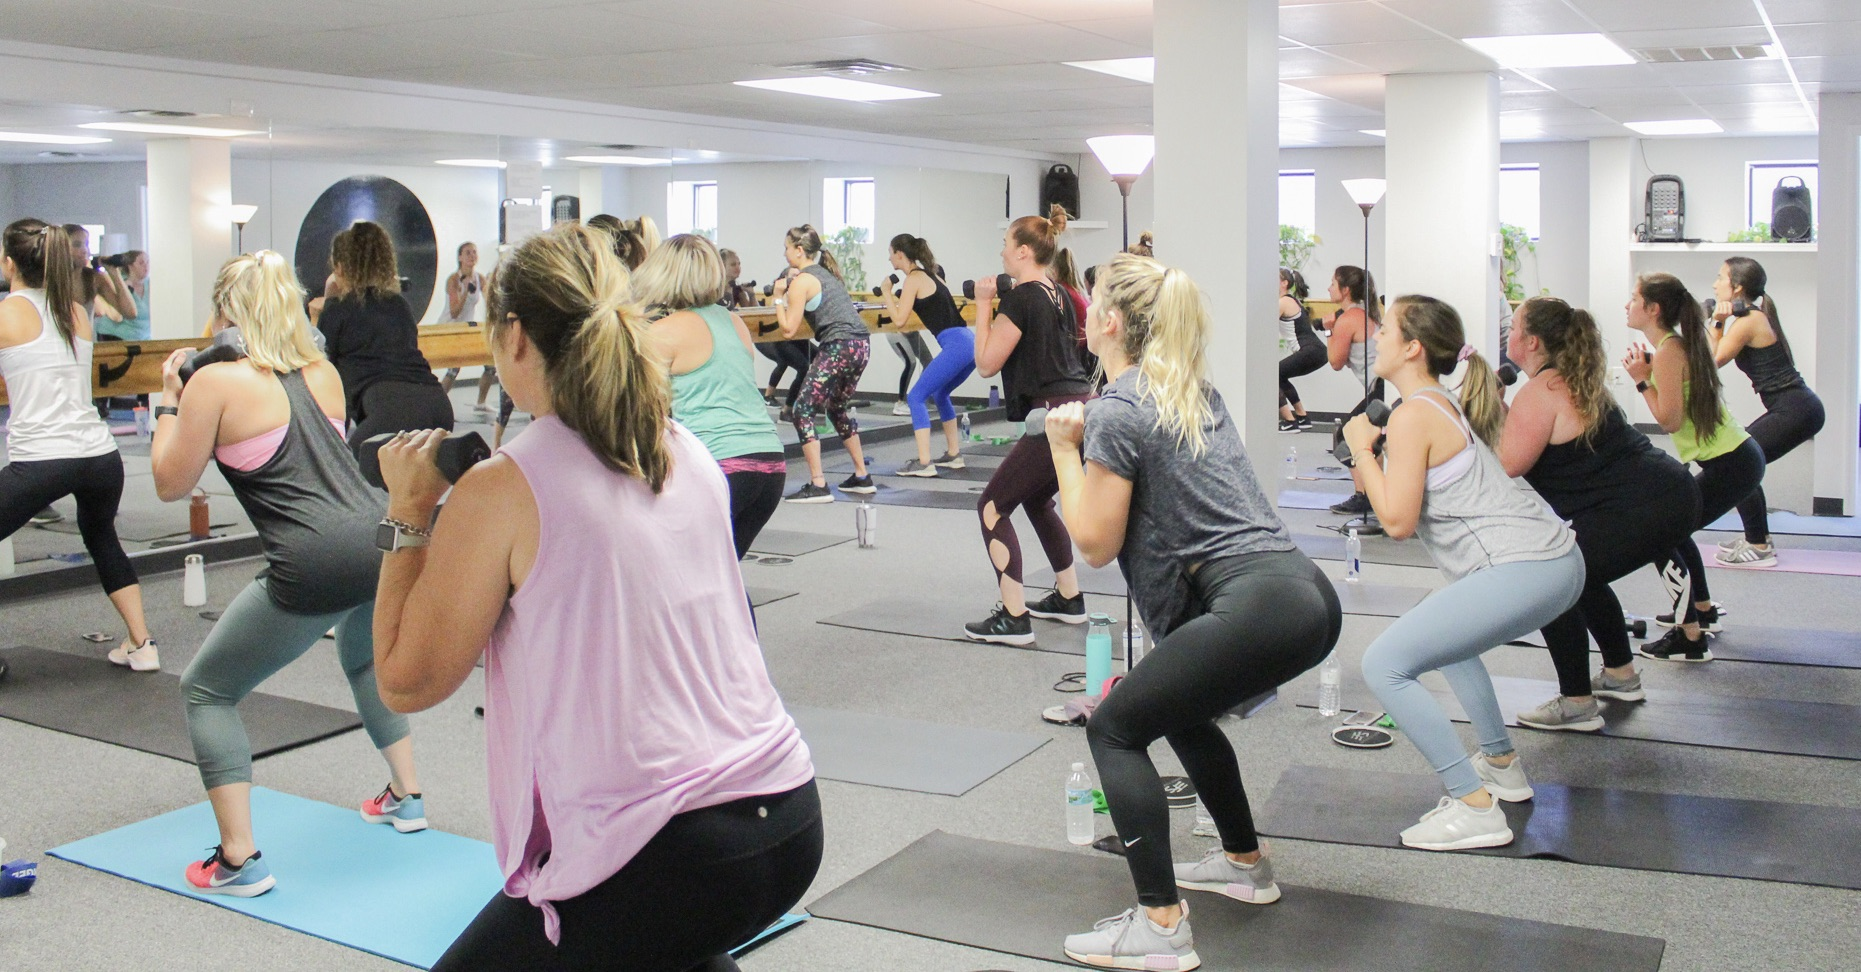 The Balance Culture | Women's Fitness Studio in Lakeland, FL